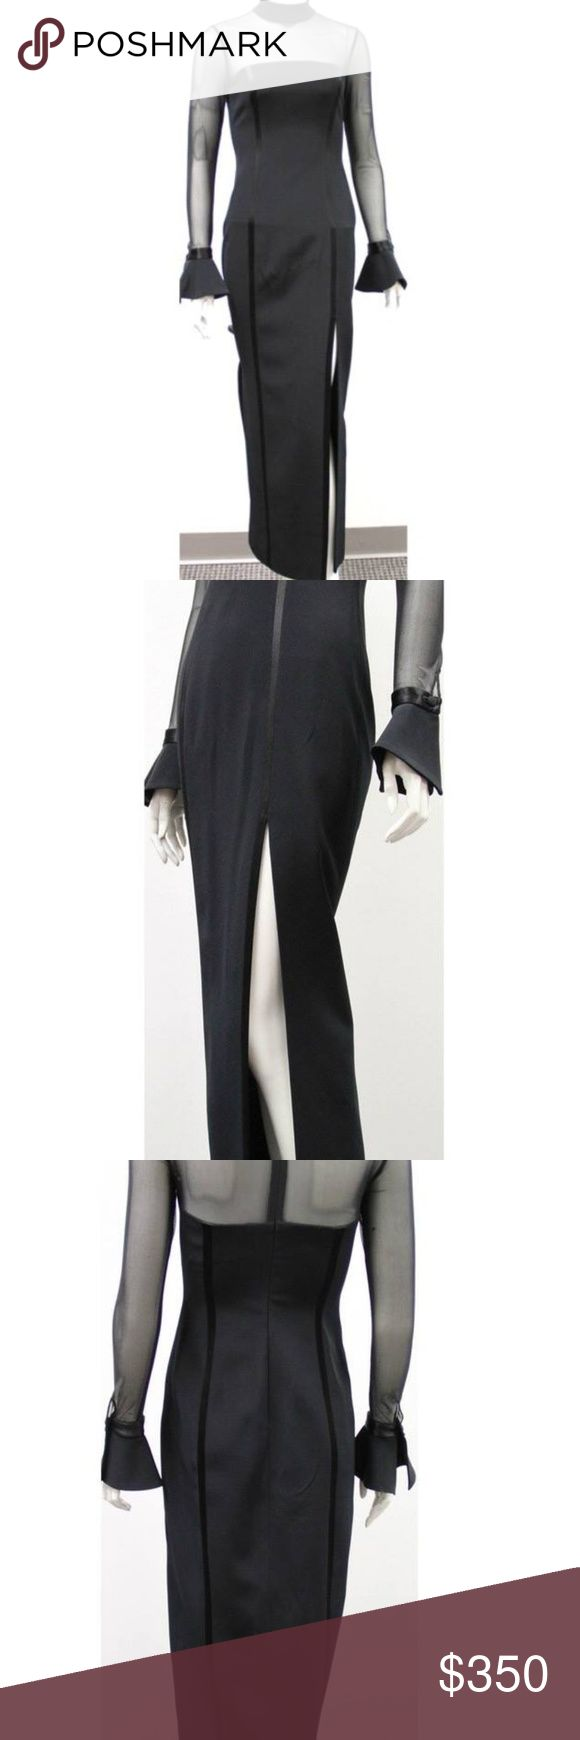 """Oleg Cassini Evening Dress Sz 2 This dress is amazing. Perfect if you want an edgier  but sleek look.  Form fitting, body con  shape with a black sheer panels on both the chest and arms. I'm in love with the bell cuffs and the thigh high slit.  Very in right now.  Dimensions : size 2 10.0"""" W x 6.0""""H x 8.0""""D  Condition:  Good Oleg Cassini Dresses Maxi"""